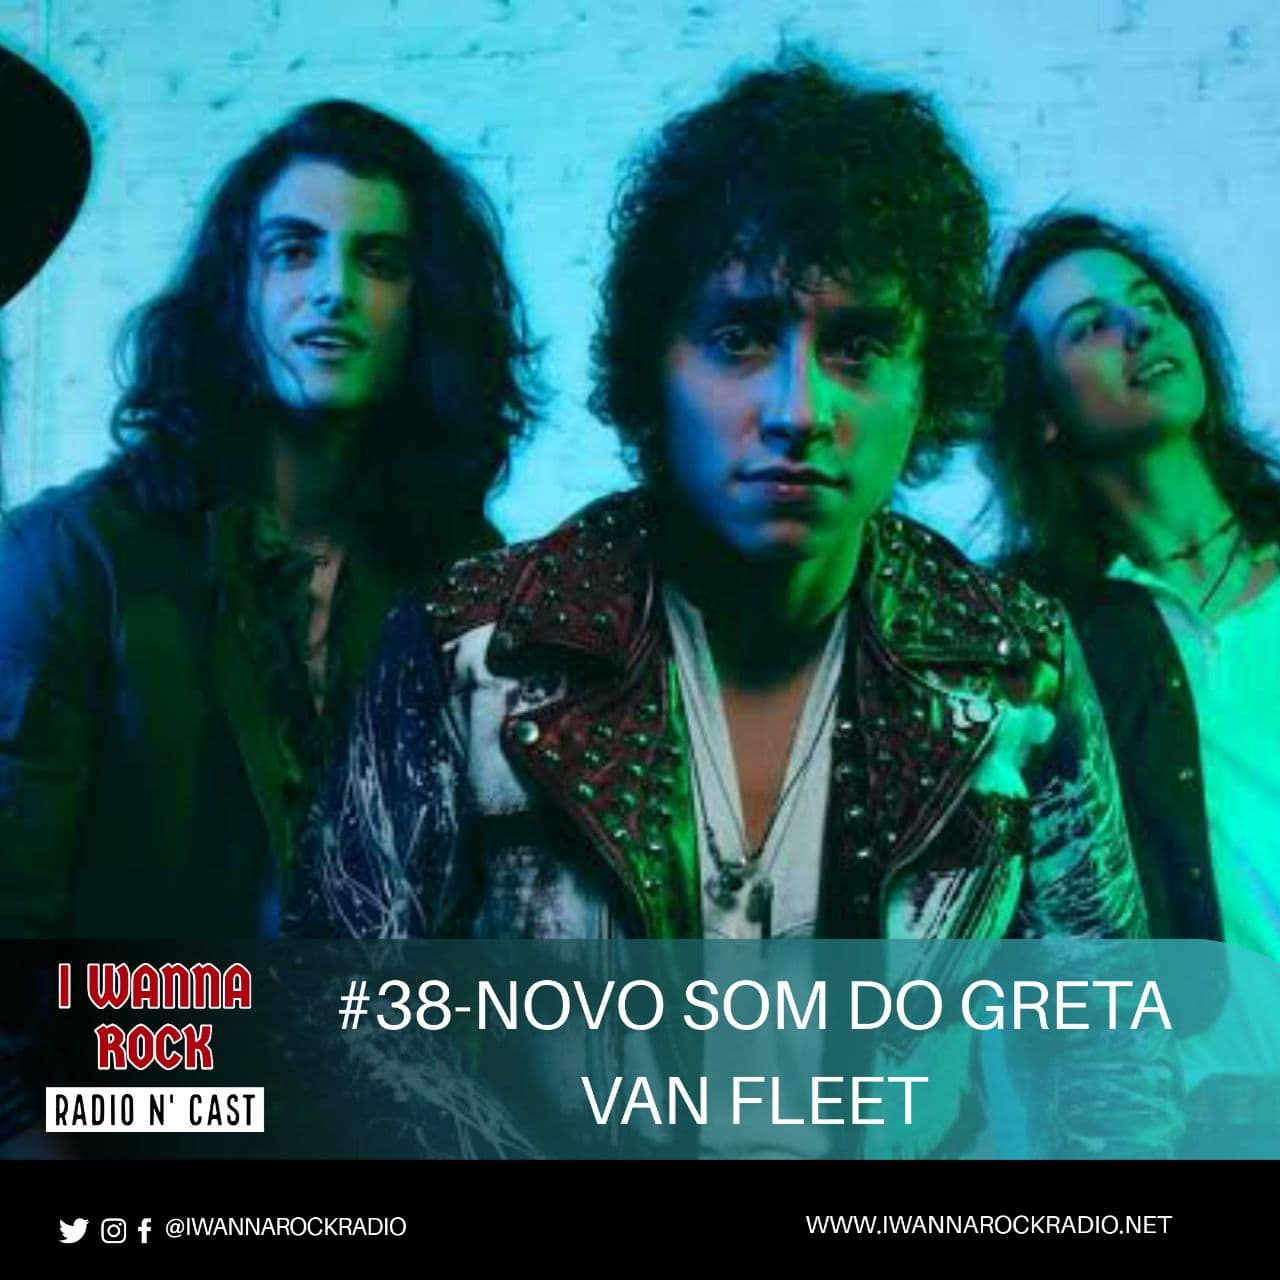 I Wanna Rock #38- Novo som do Greta Van Fleet.